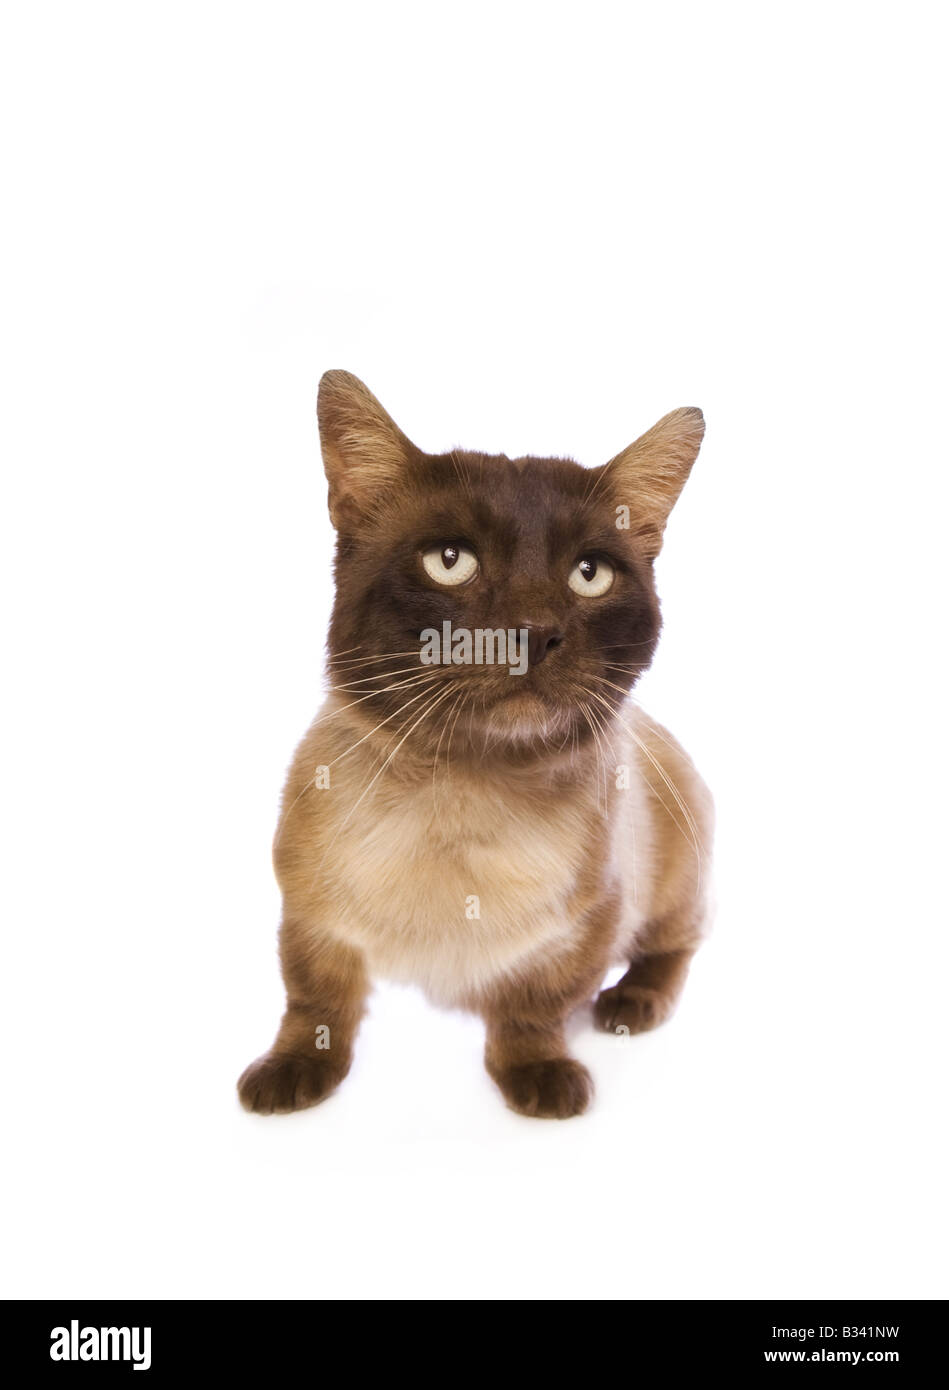 Cute chocolate point Munchkin cat isolated on white background - Stock Image